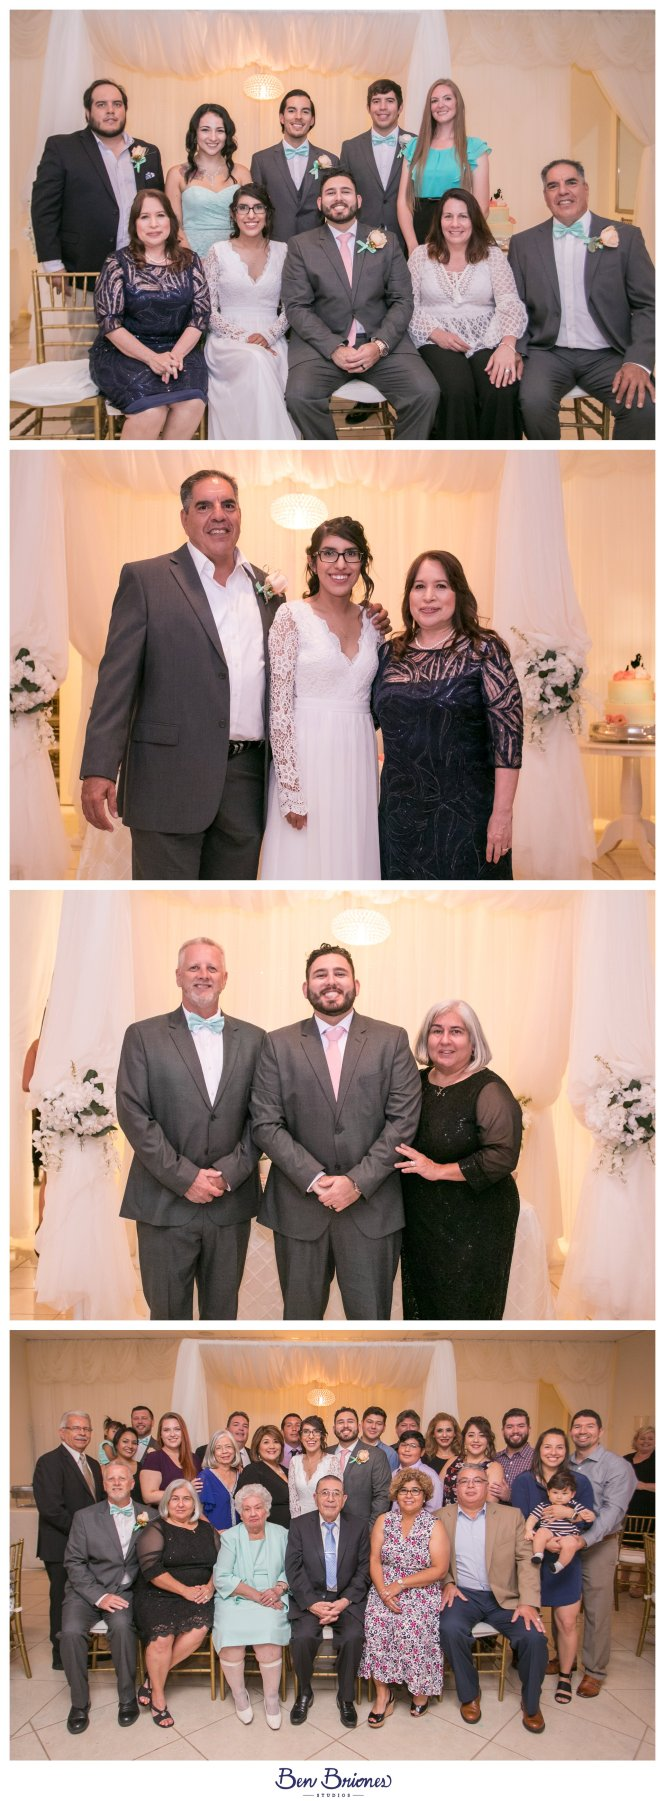 08.12.17_HighRes_Monica Valdez Wedding_BBS-3289